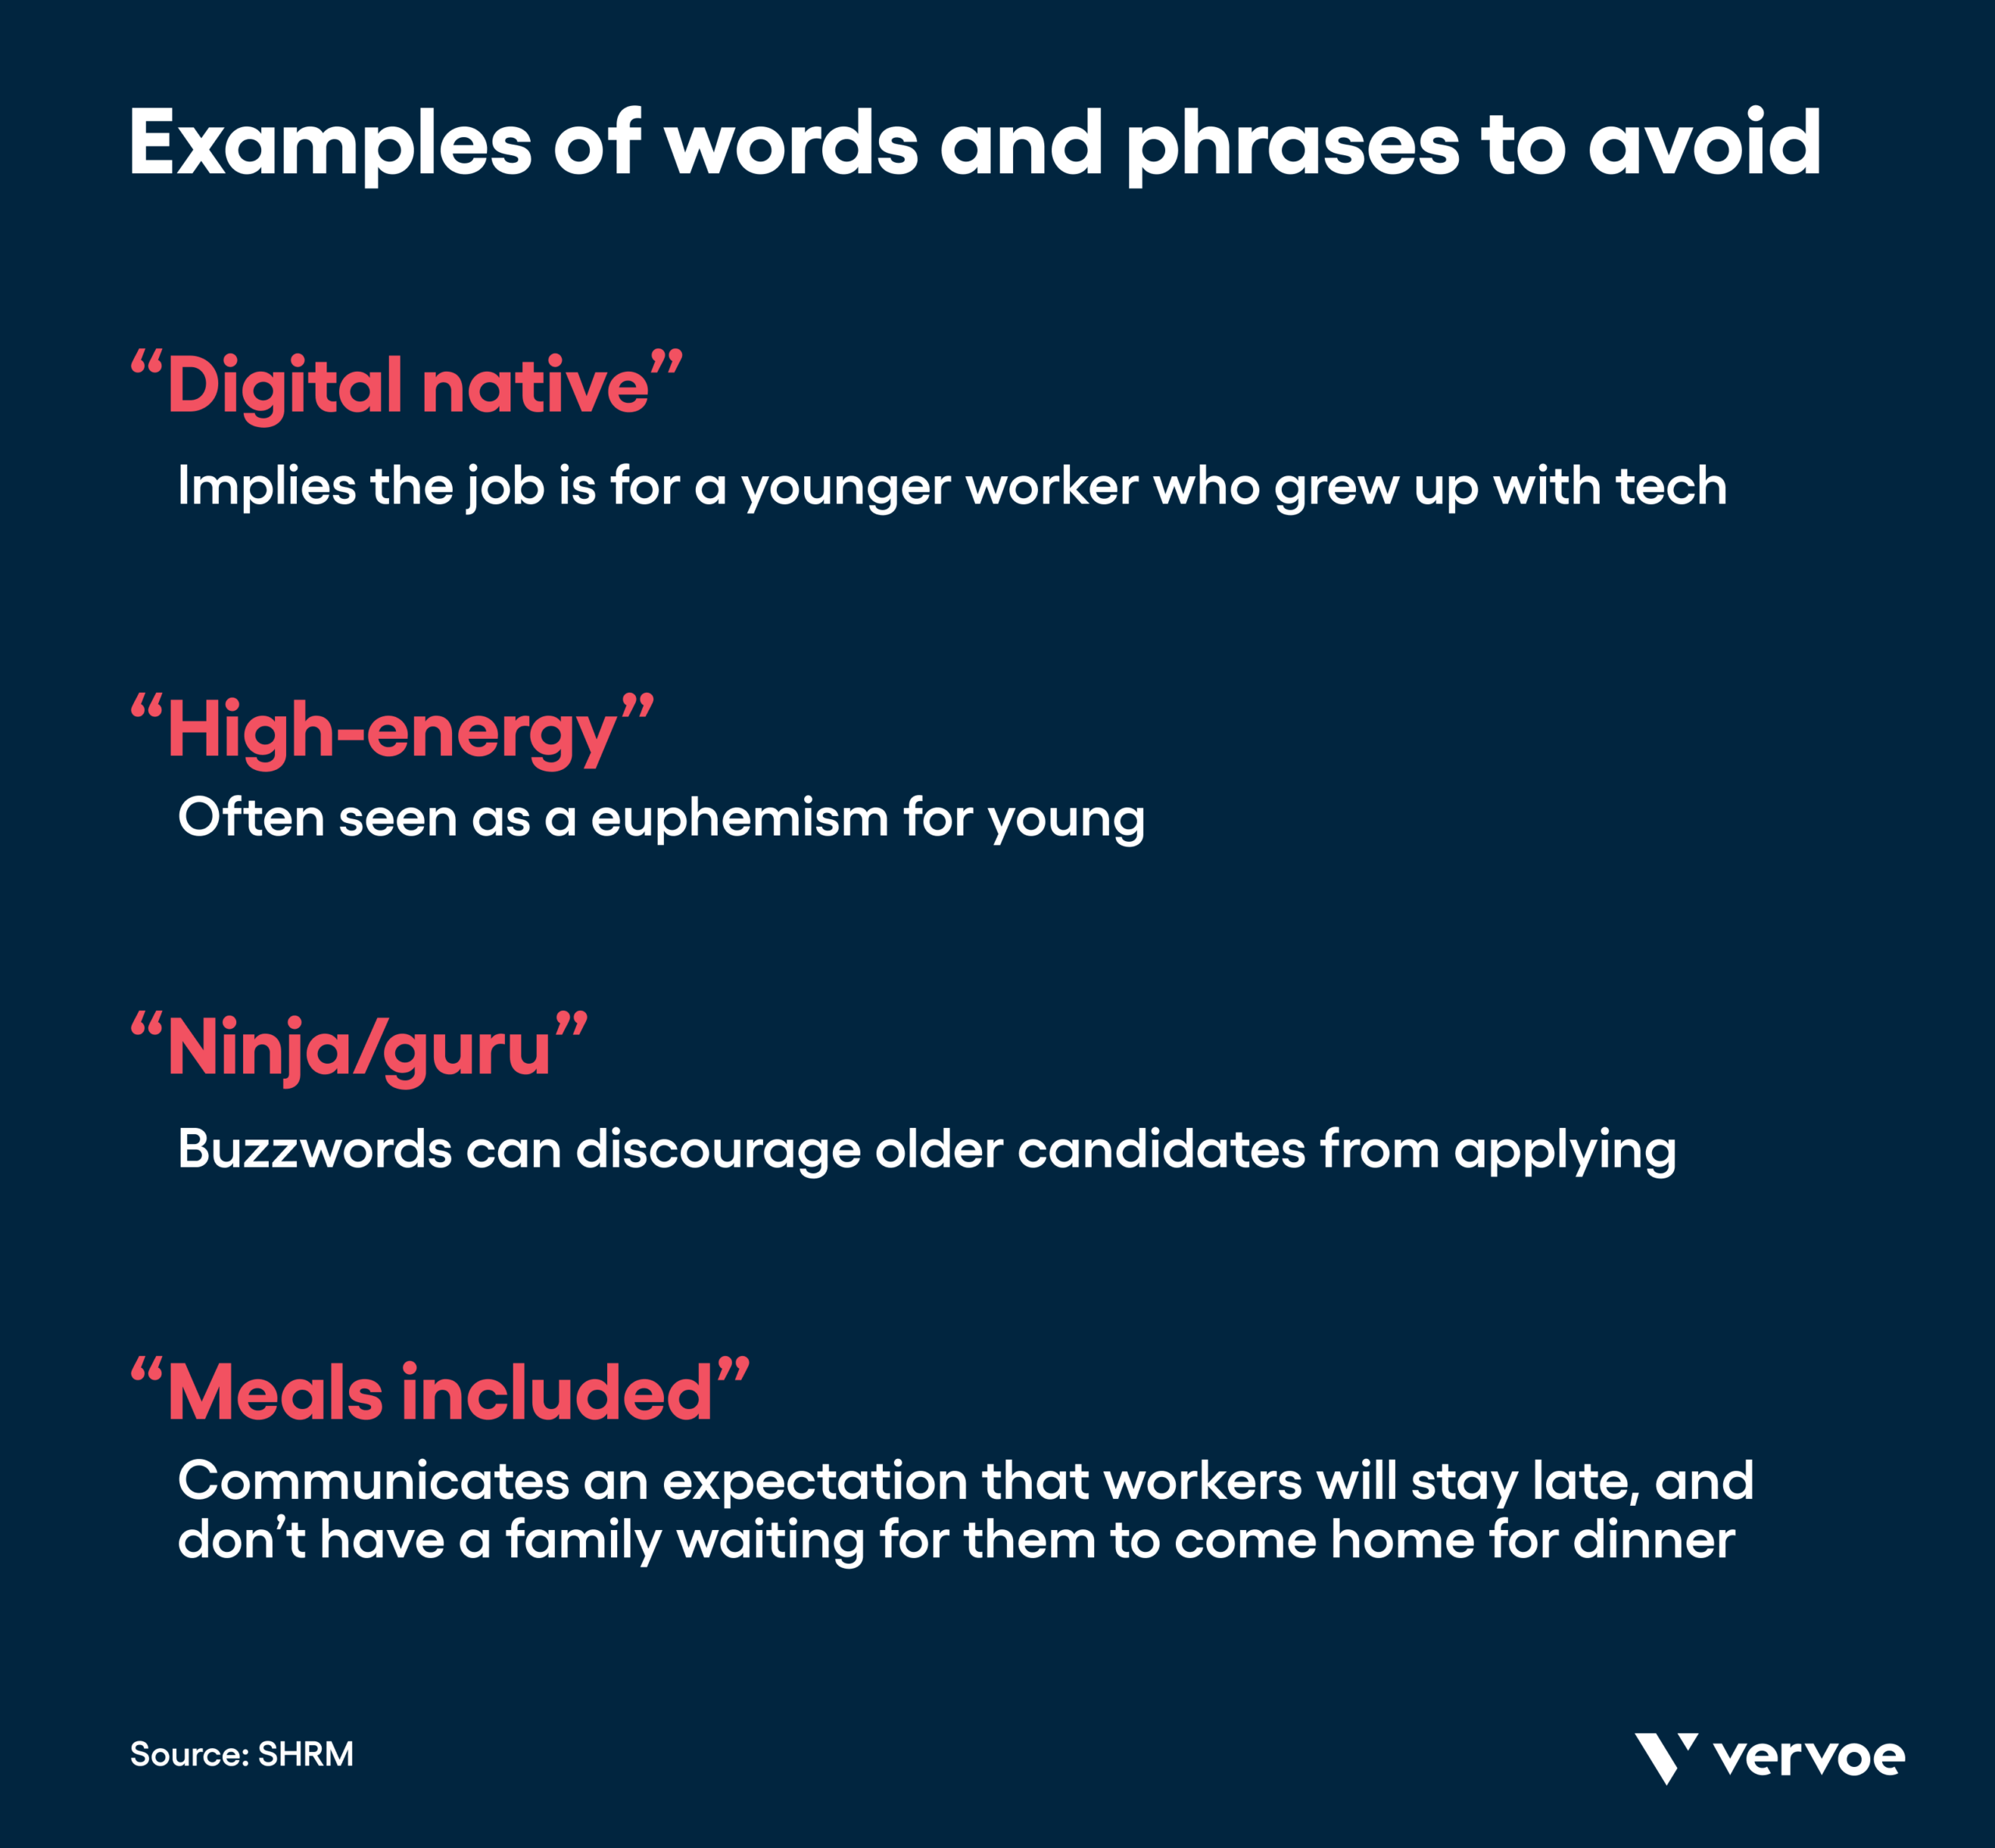 List of key words and phrases to avoid in the workplace that could be ageist